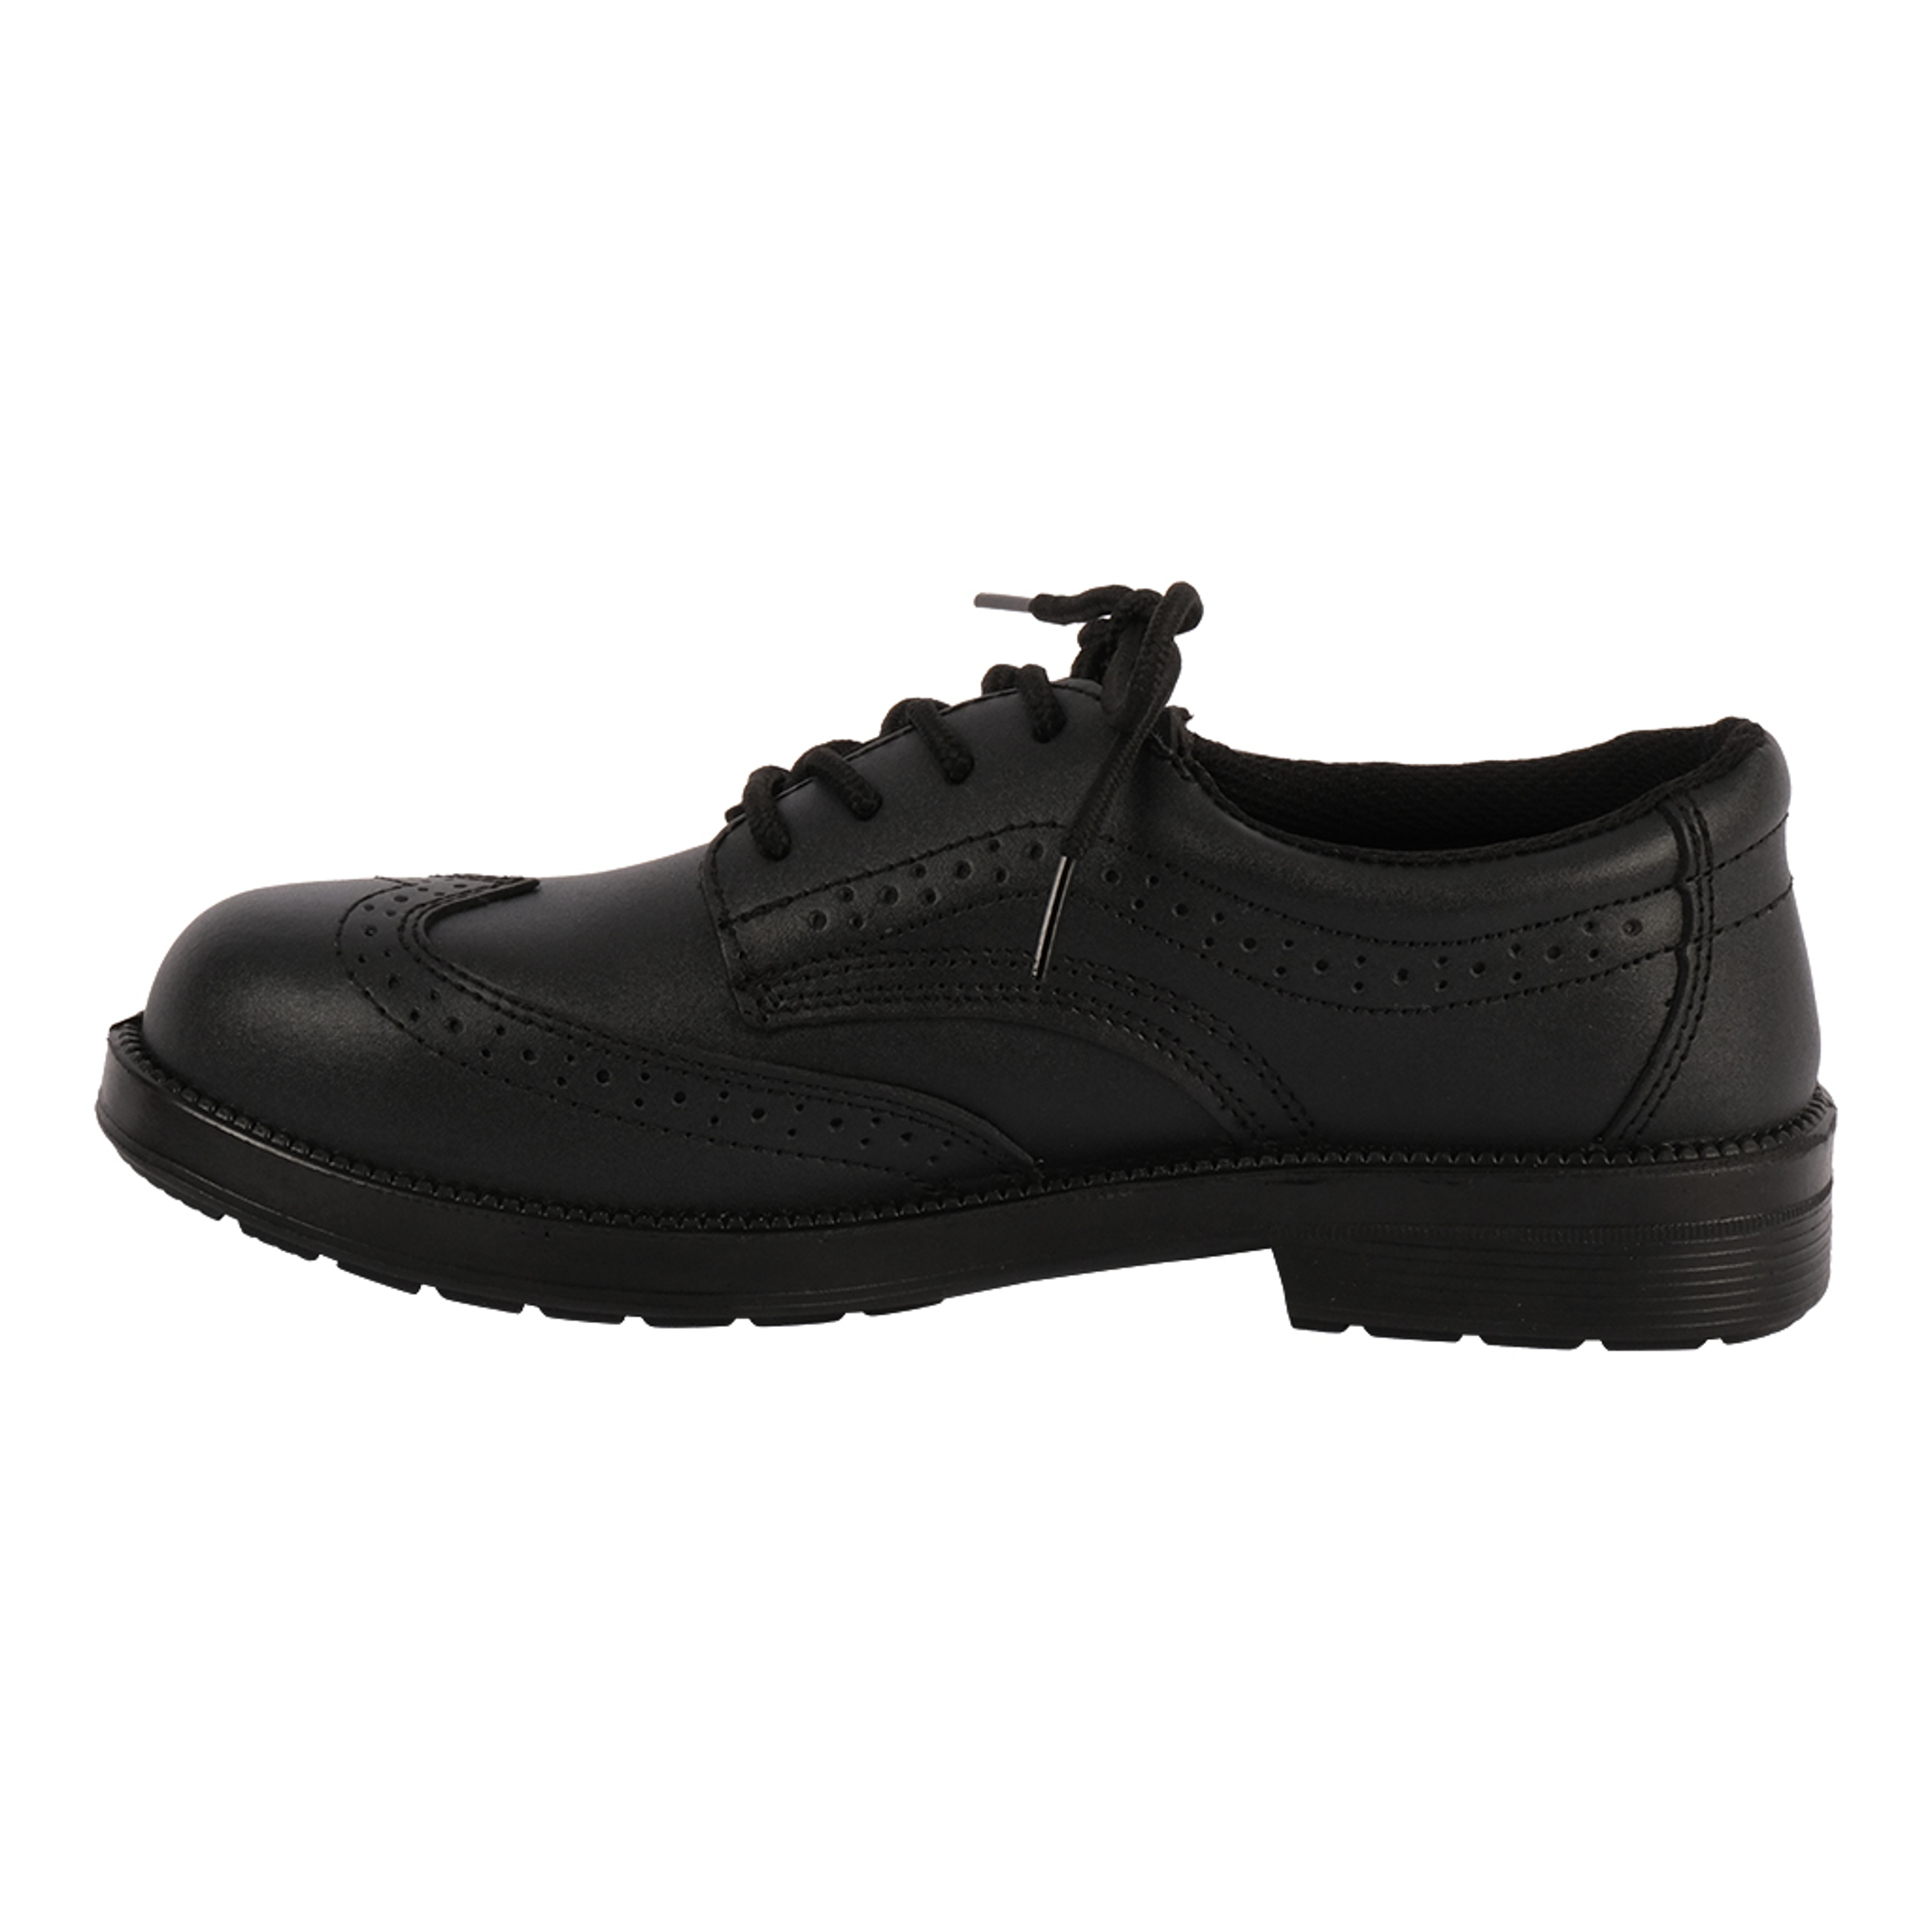 Picture of Hunk Safety Shoe SHE 3173